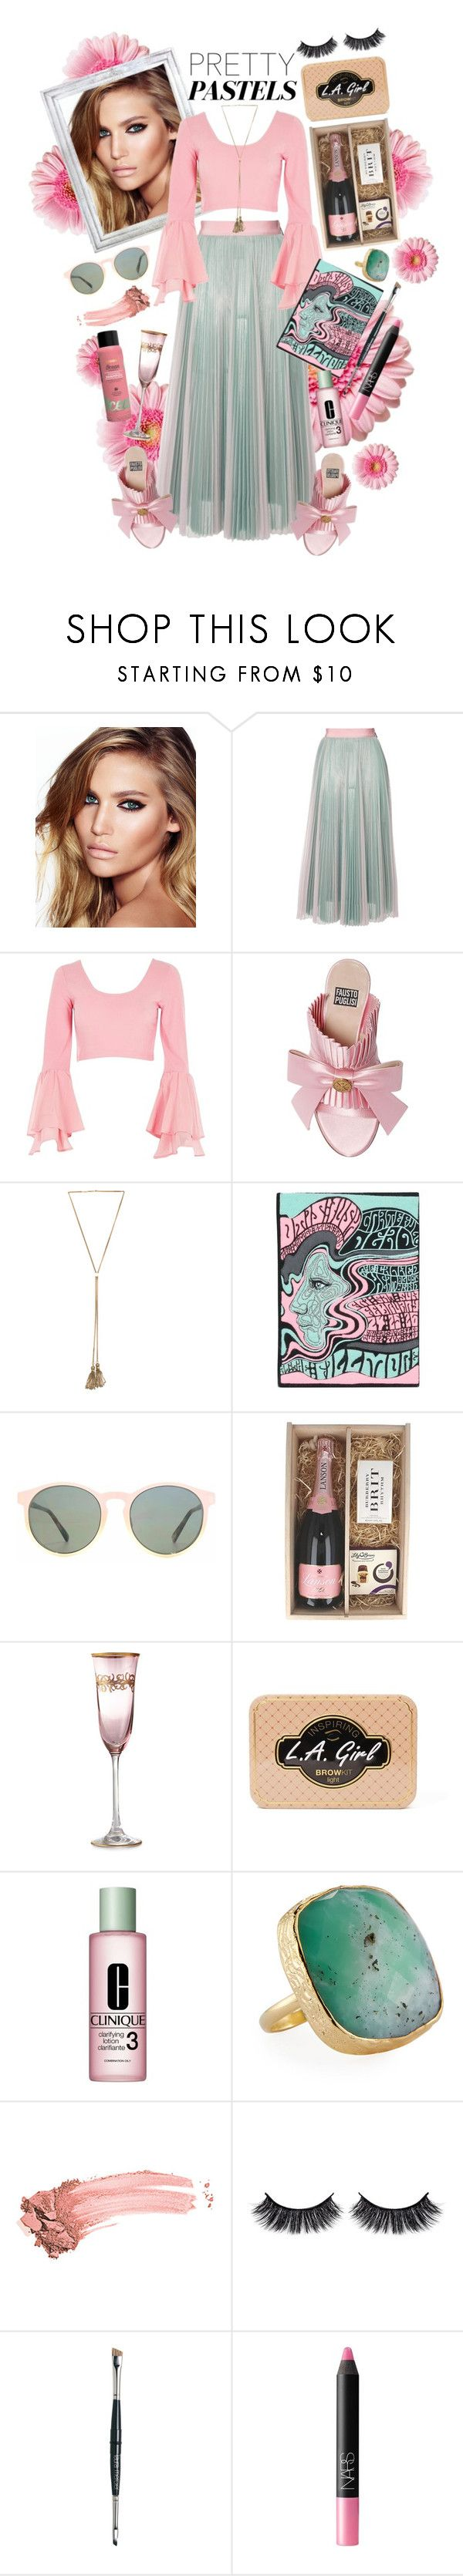 """""""Strawberry Ice Cream with Mint"""" by nessacarissa ❤ liked on Polyvore featuring Charlotte Tilbury, MSGM, River Island, FAUSTO PUGLISI, Chloé, Olympia Le-Tan, HOOK LDN, L.A. Girl, Clinique and NAKAMOL"""